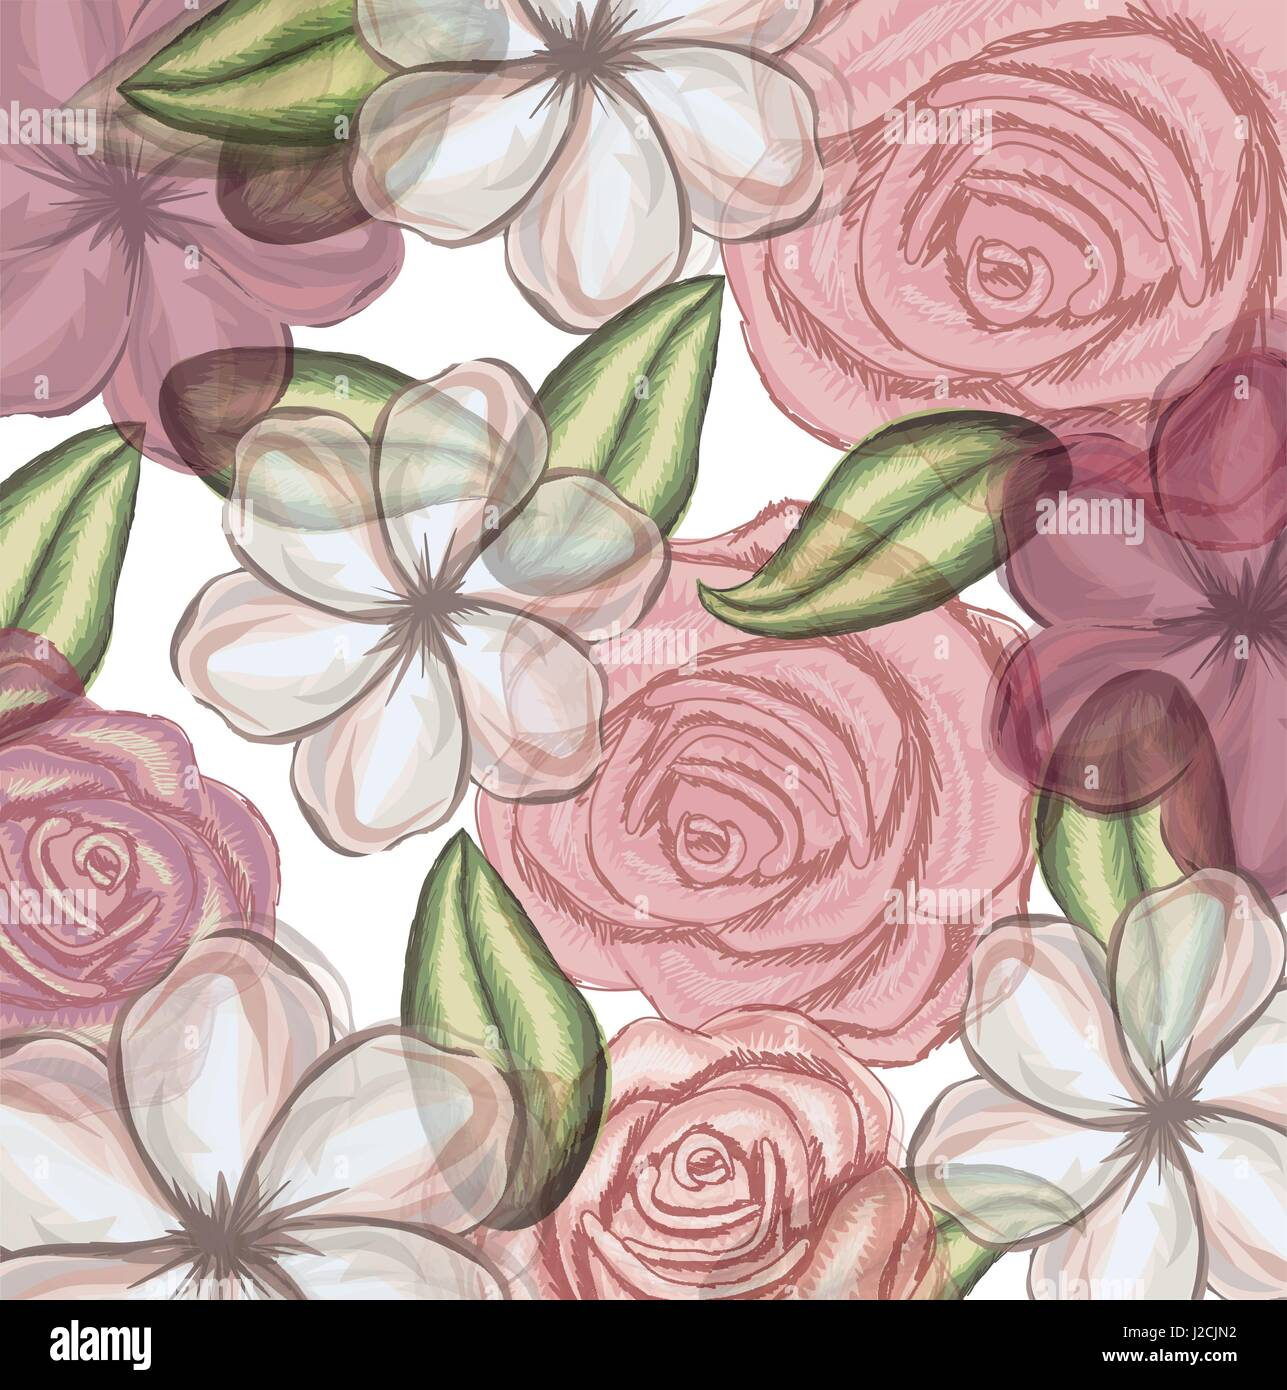 colorful floral pattern with flowers in transparency - Stock Image